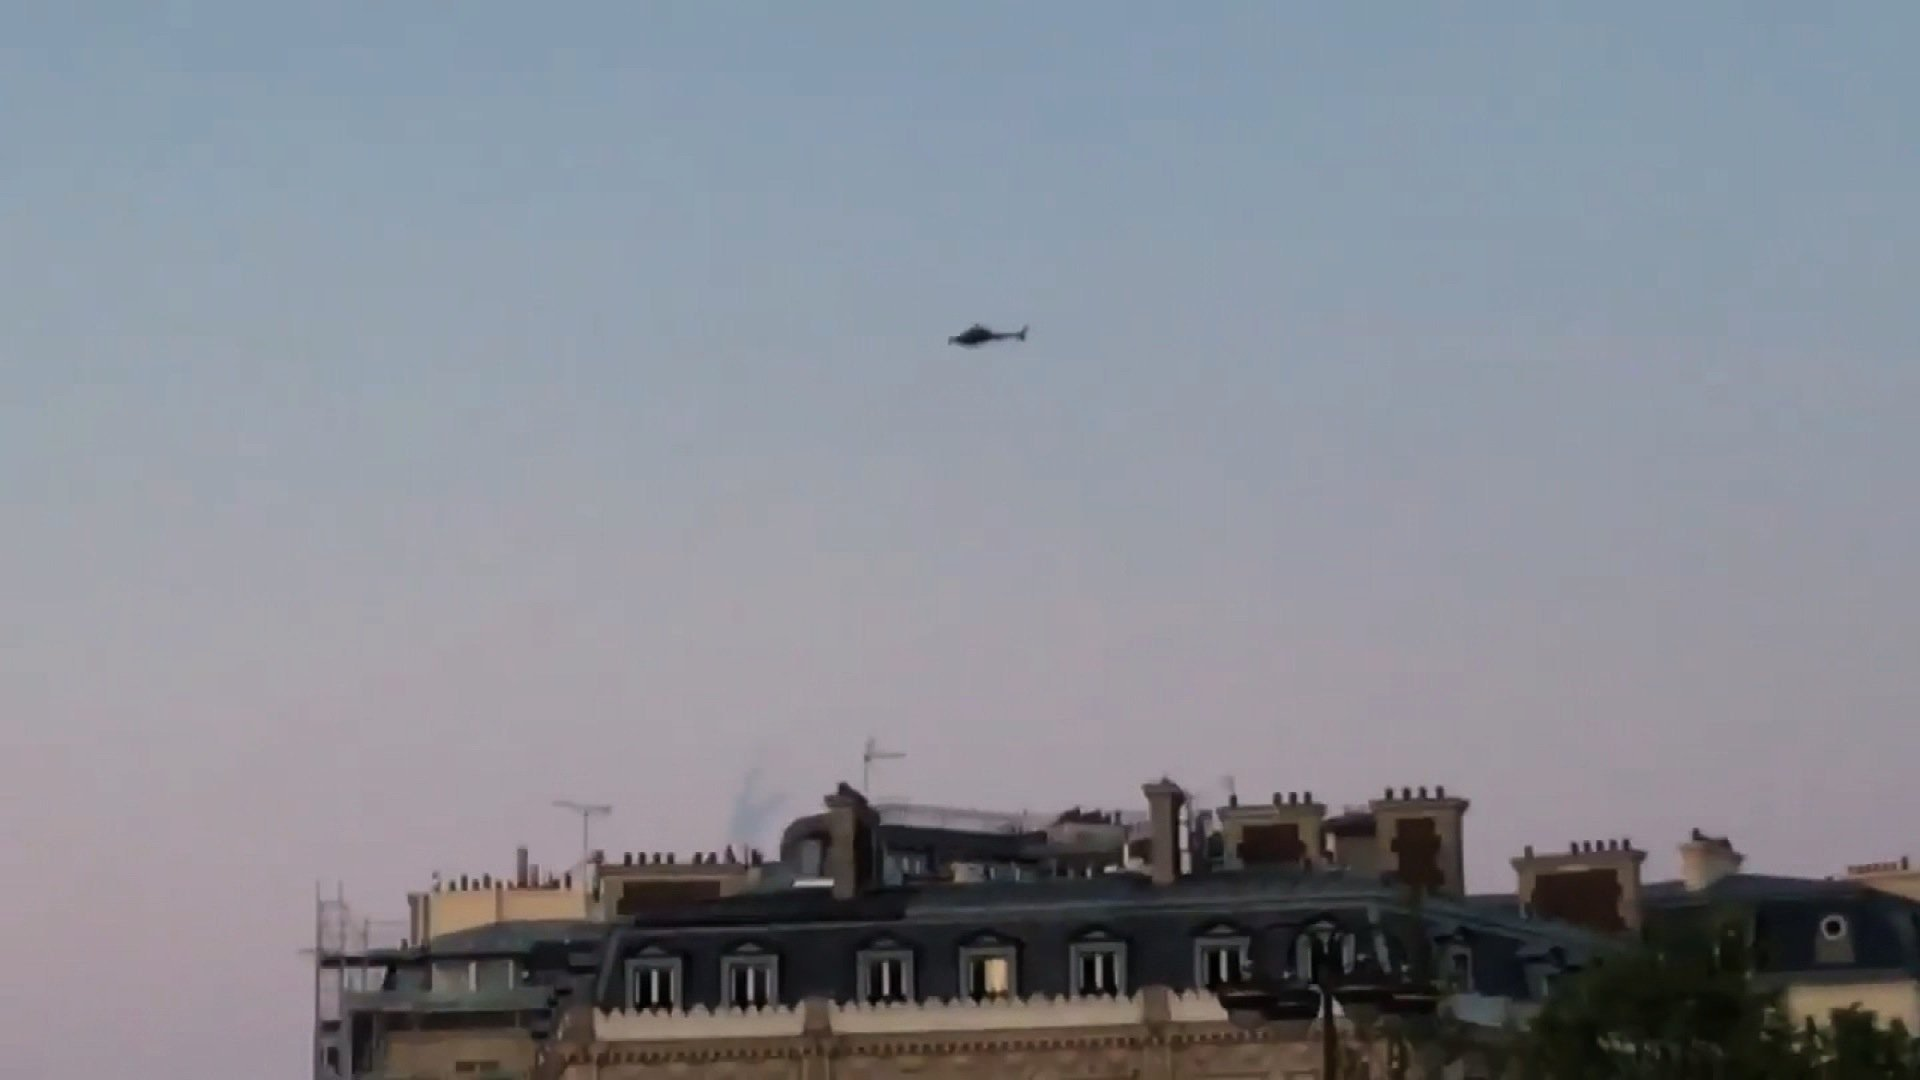 A helicopter can be seen above the Champs-Elysées area in Paris, France, after gunshots were reported.